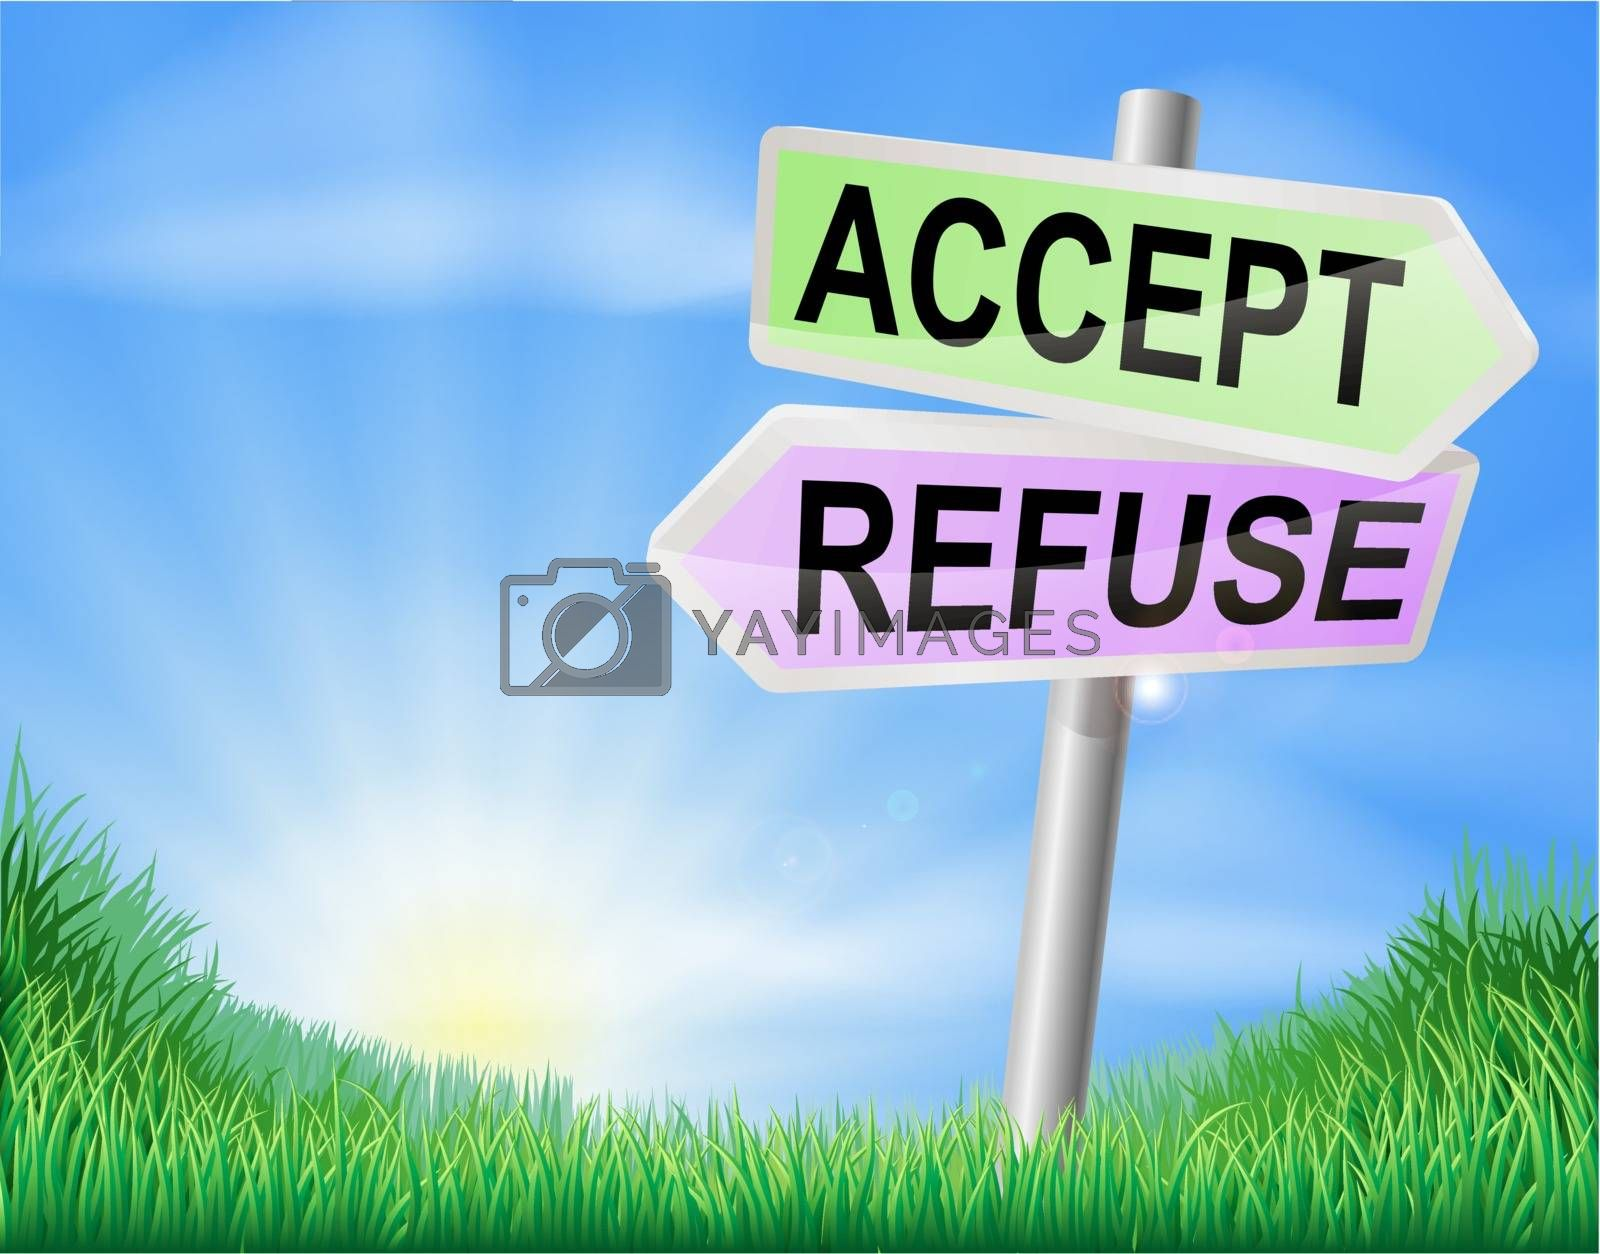 Accept or refuse sign concept with a choice to make